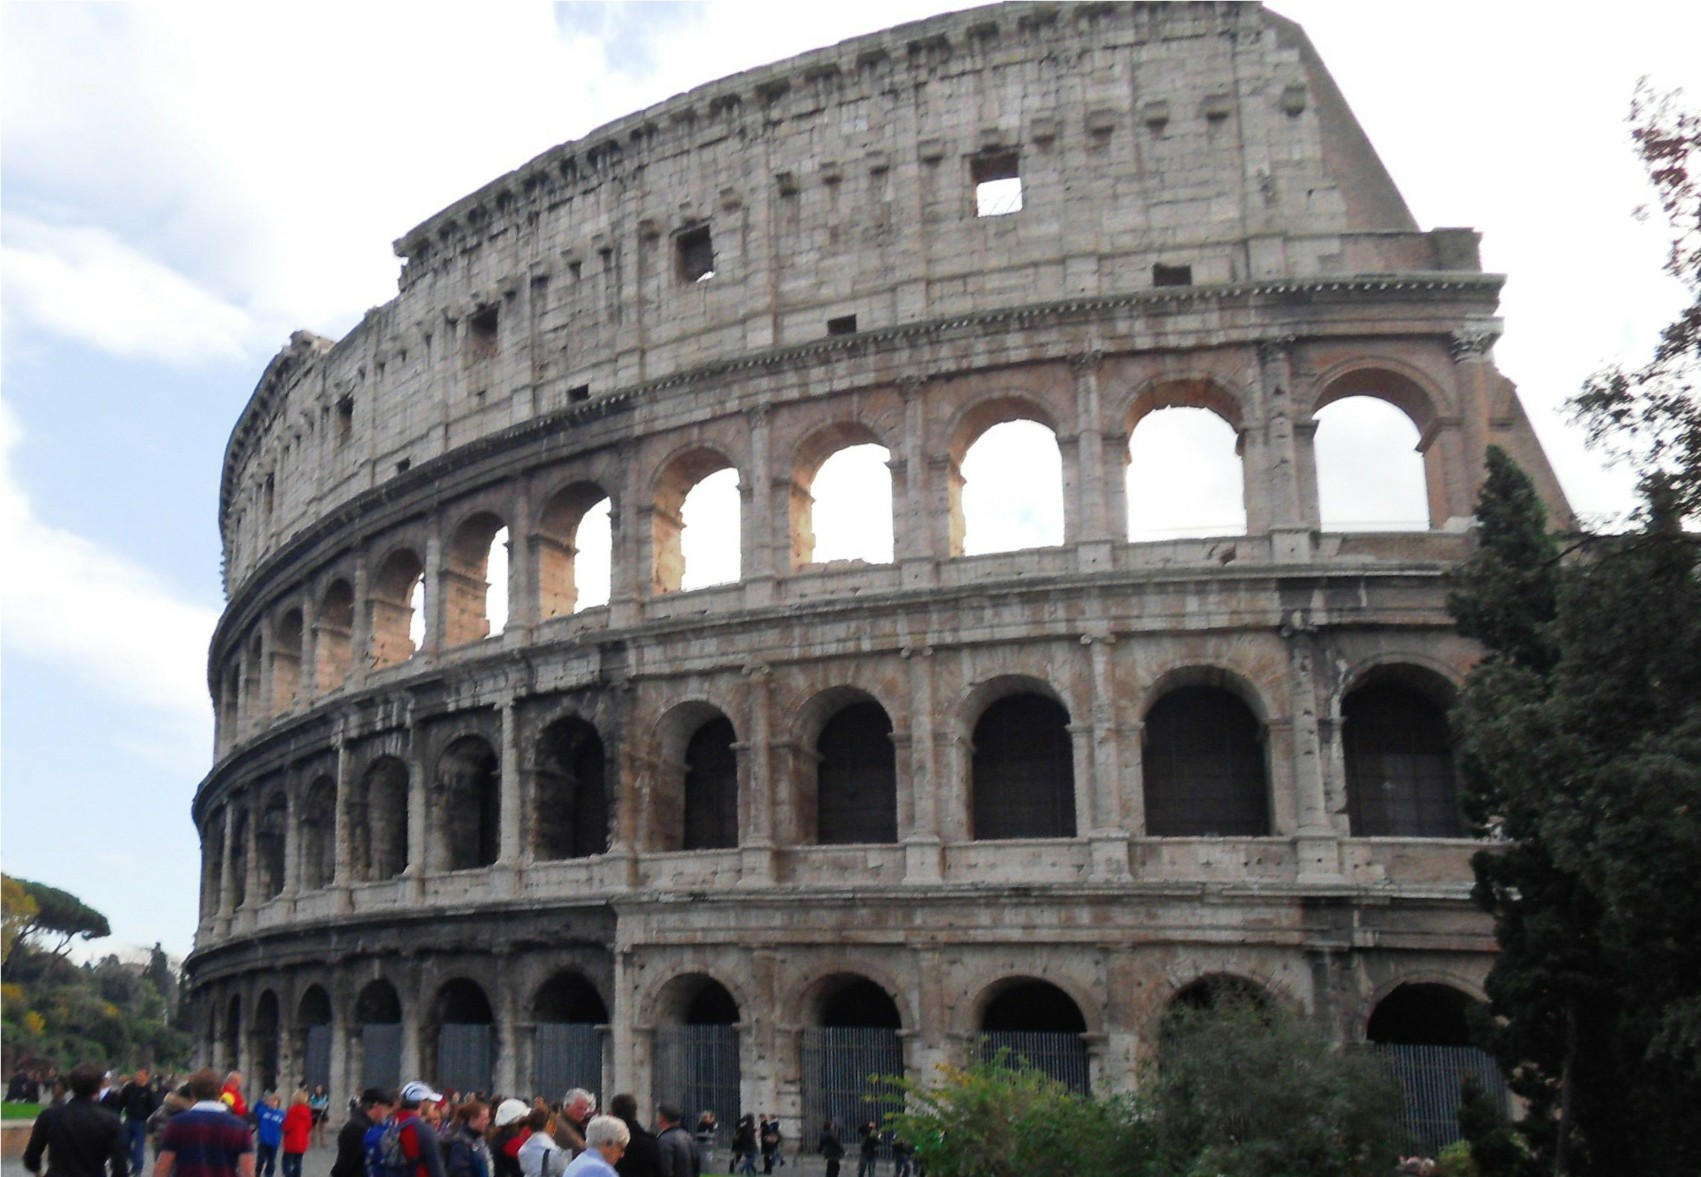 Famous Historic Buildings Archaeological Site In Italy Rome Colosseum Forum Pantheon